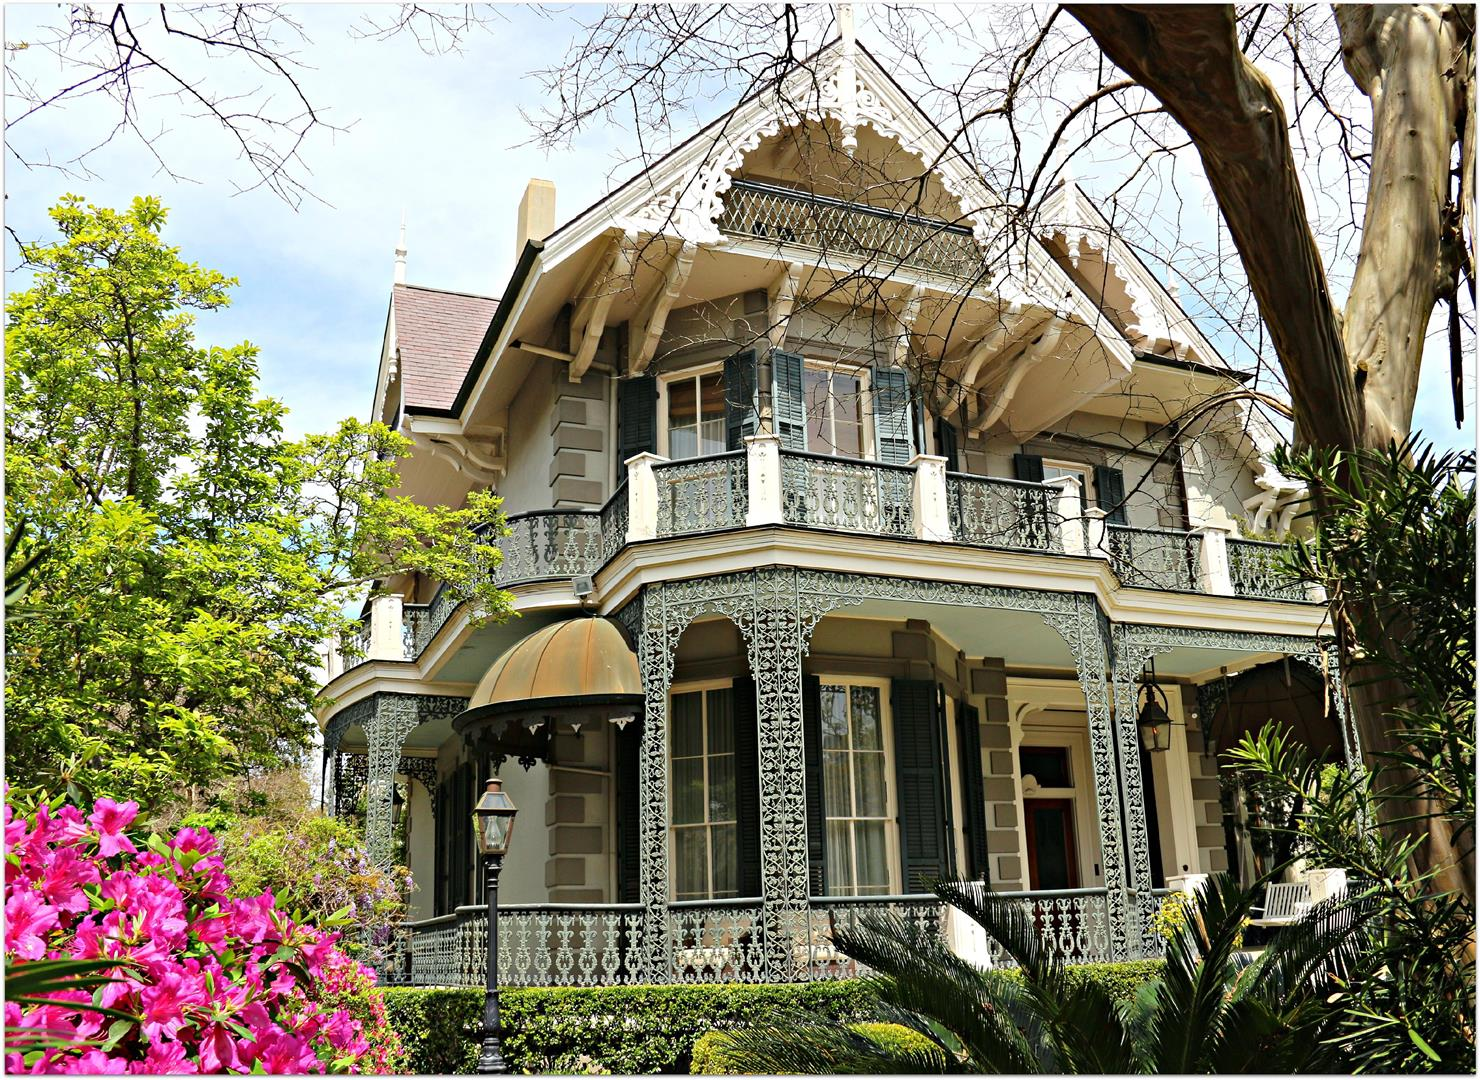 SecondHomeofSandraBullock.jpg. Sandra Bullock's second home in the Garden District of New Orleans